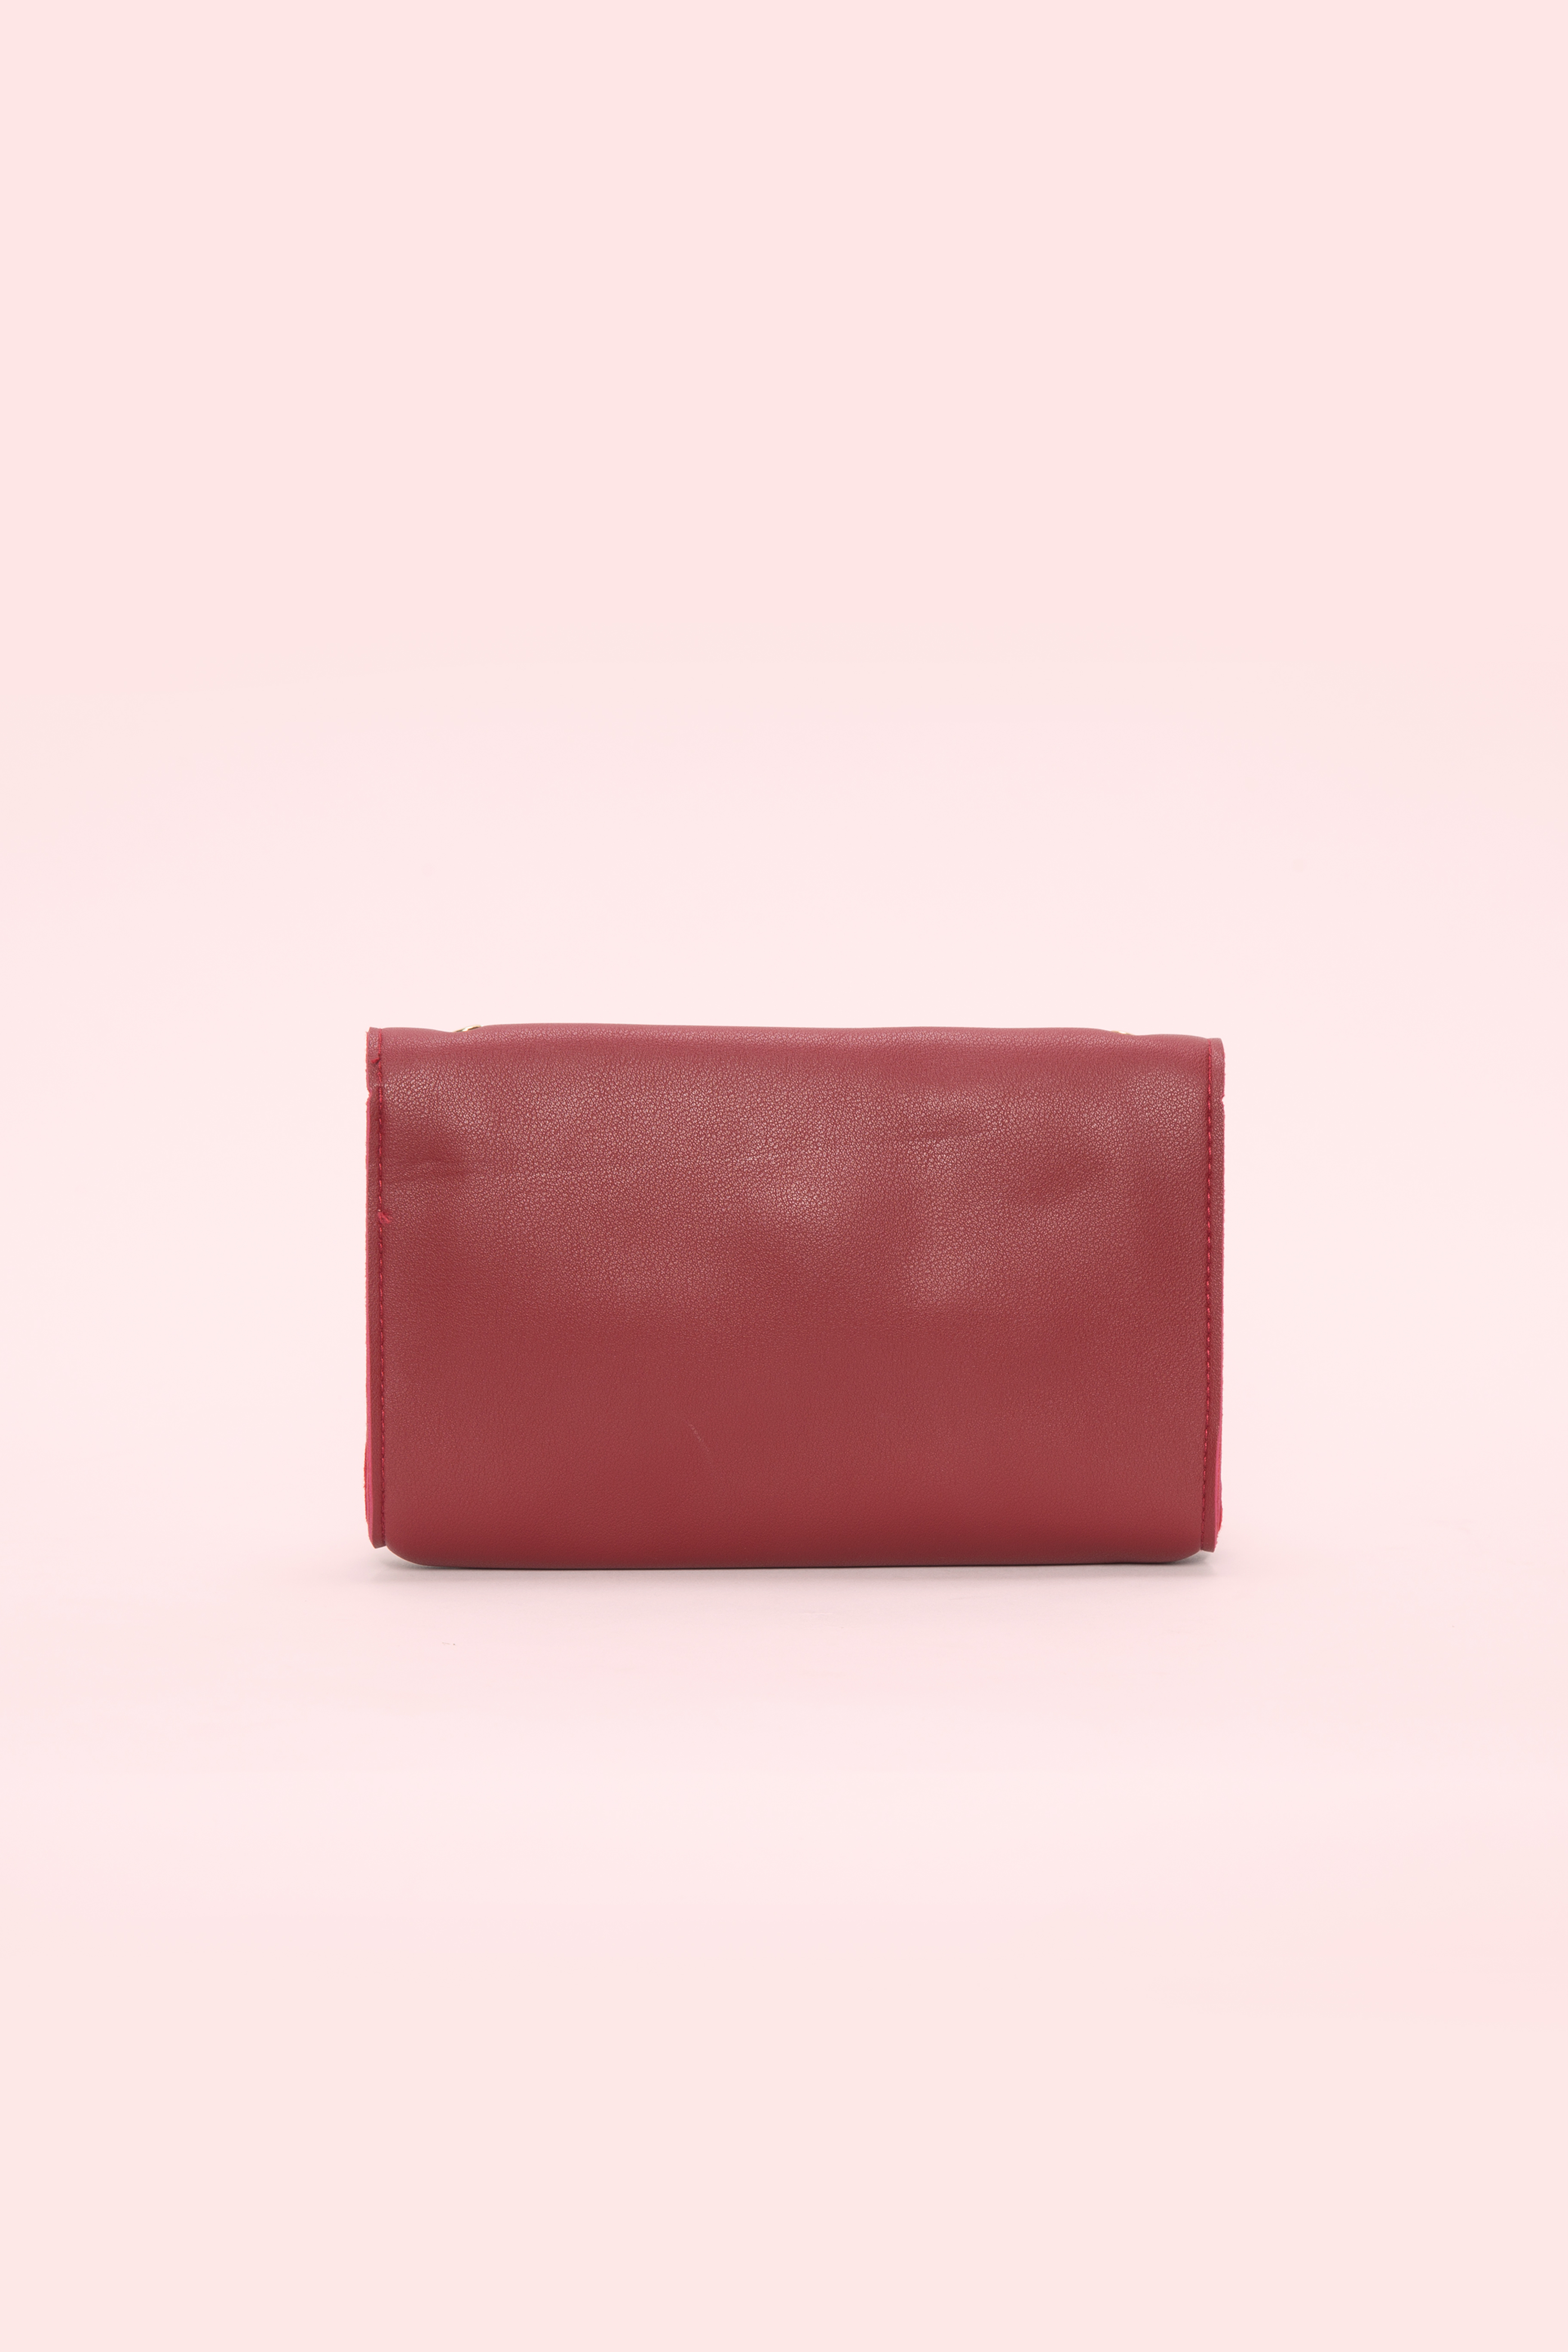 Folle Red Clutch